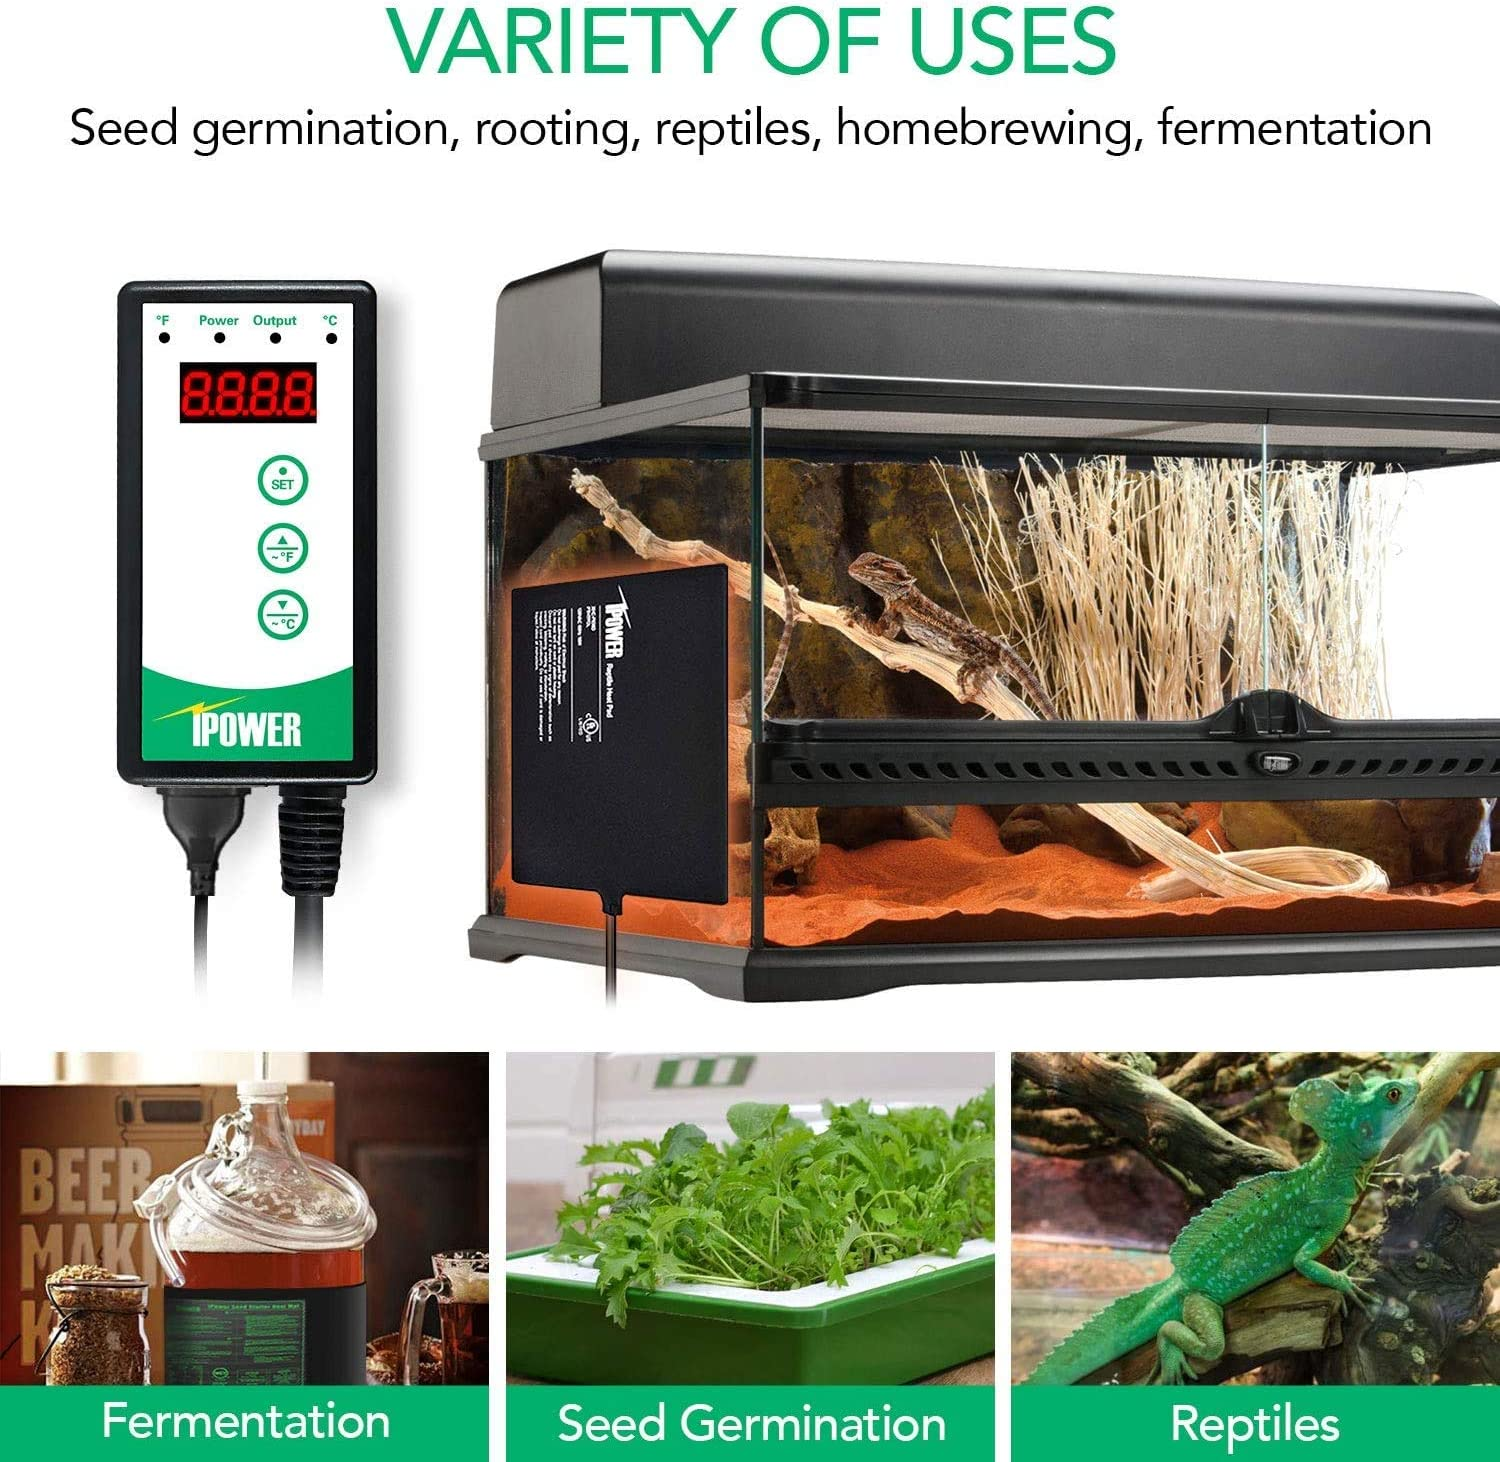 Seed Germination,Black iPower GLHTMTCTRLHTMTSV1 10x20.5 Warm Hydroponic Seedling Heat Mat and Digital Thermostat Control Combo Set 10 x 20.5